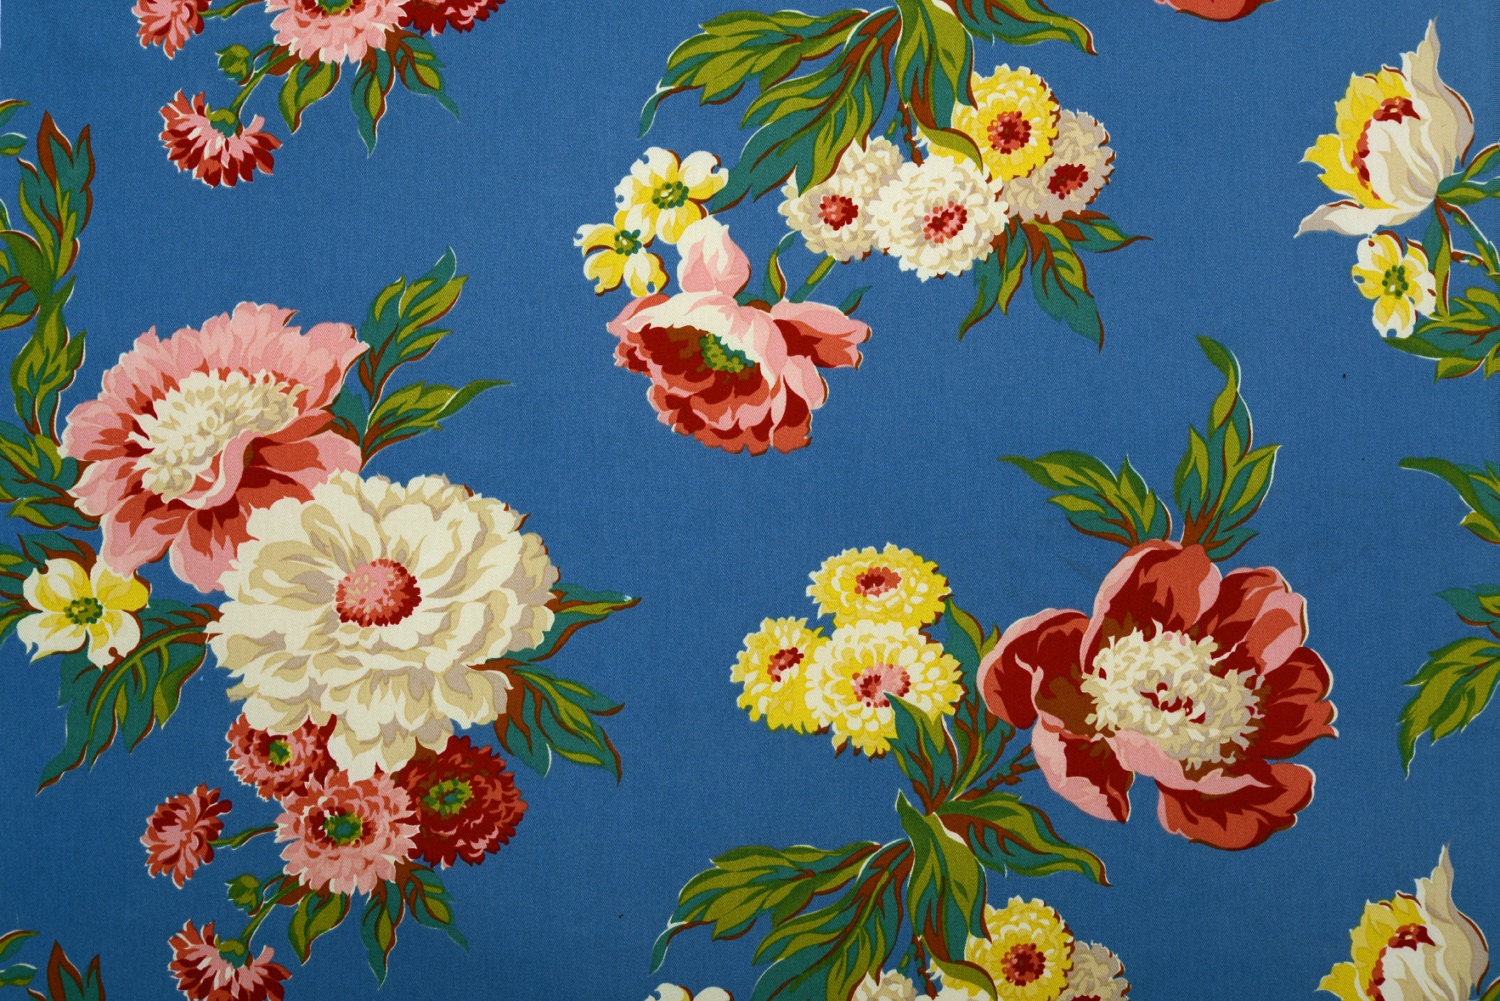 Vintage Reproduction Fabric. 1940's Floral. Home Decor